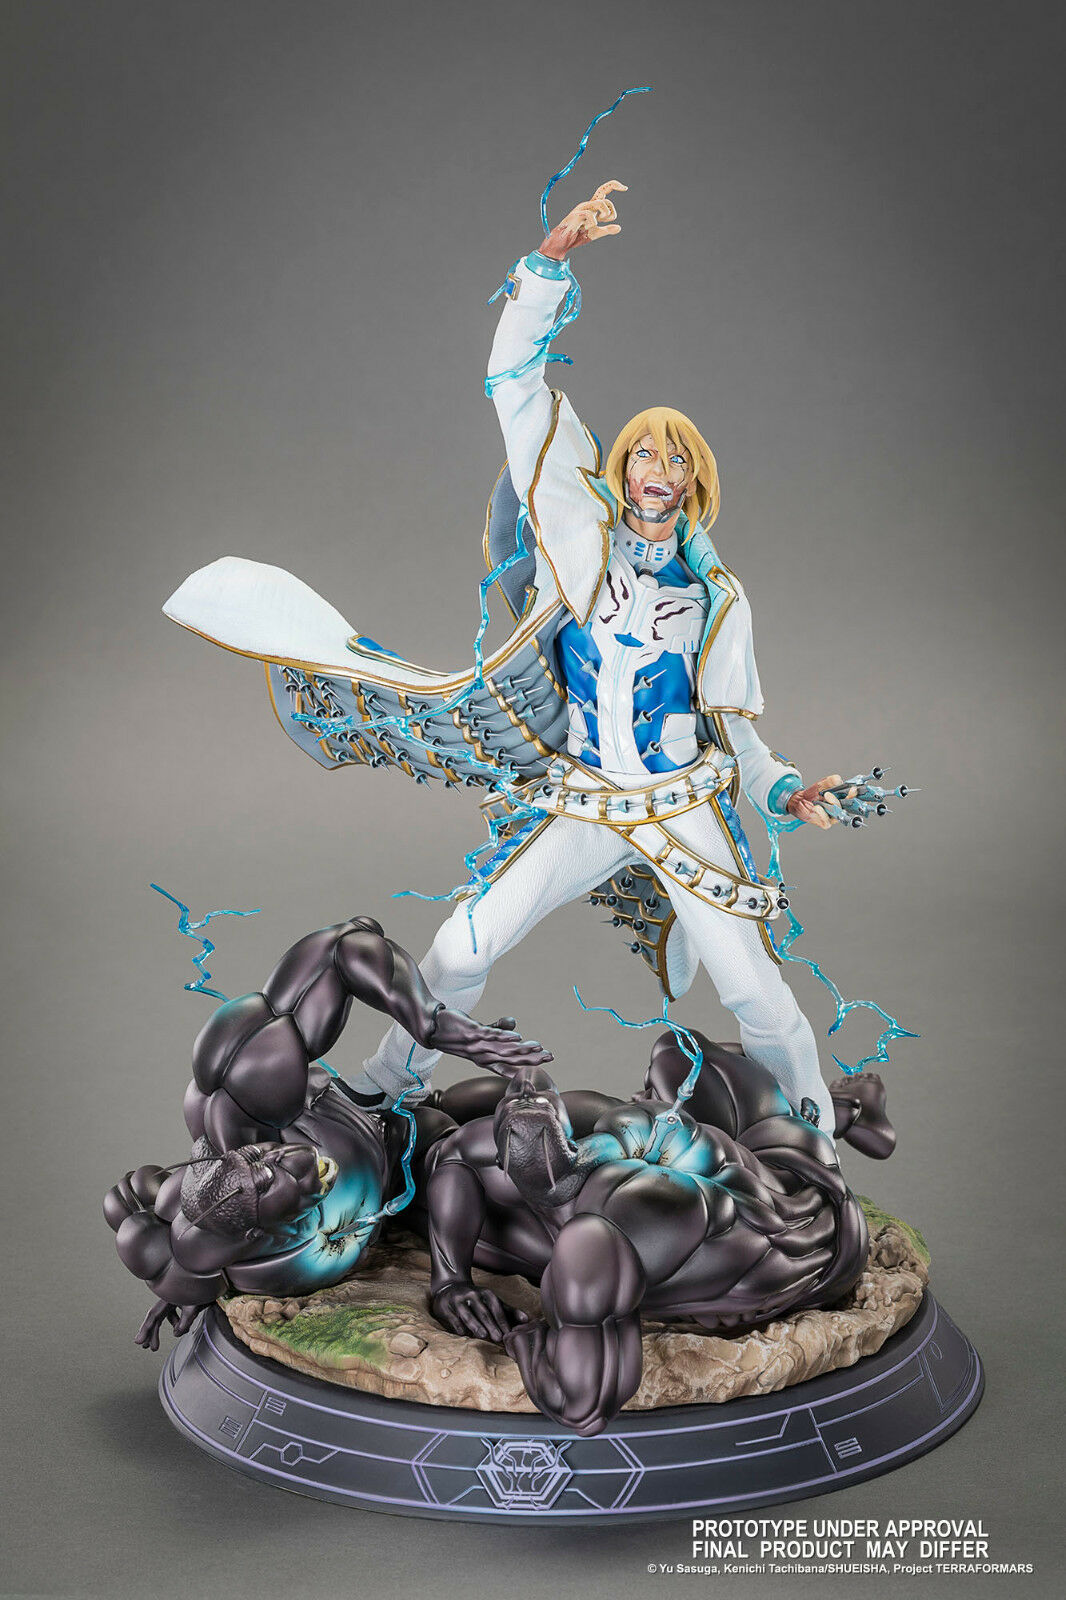 Adolf Reinhard HQS Tsume - Terra Formars High Quality Statue Limited SOLD OUT